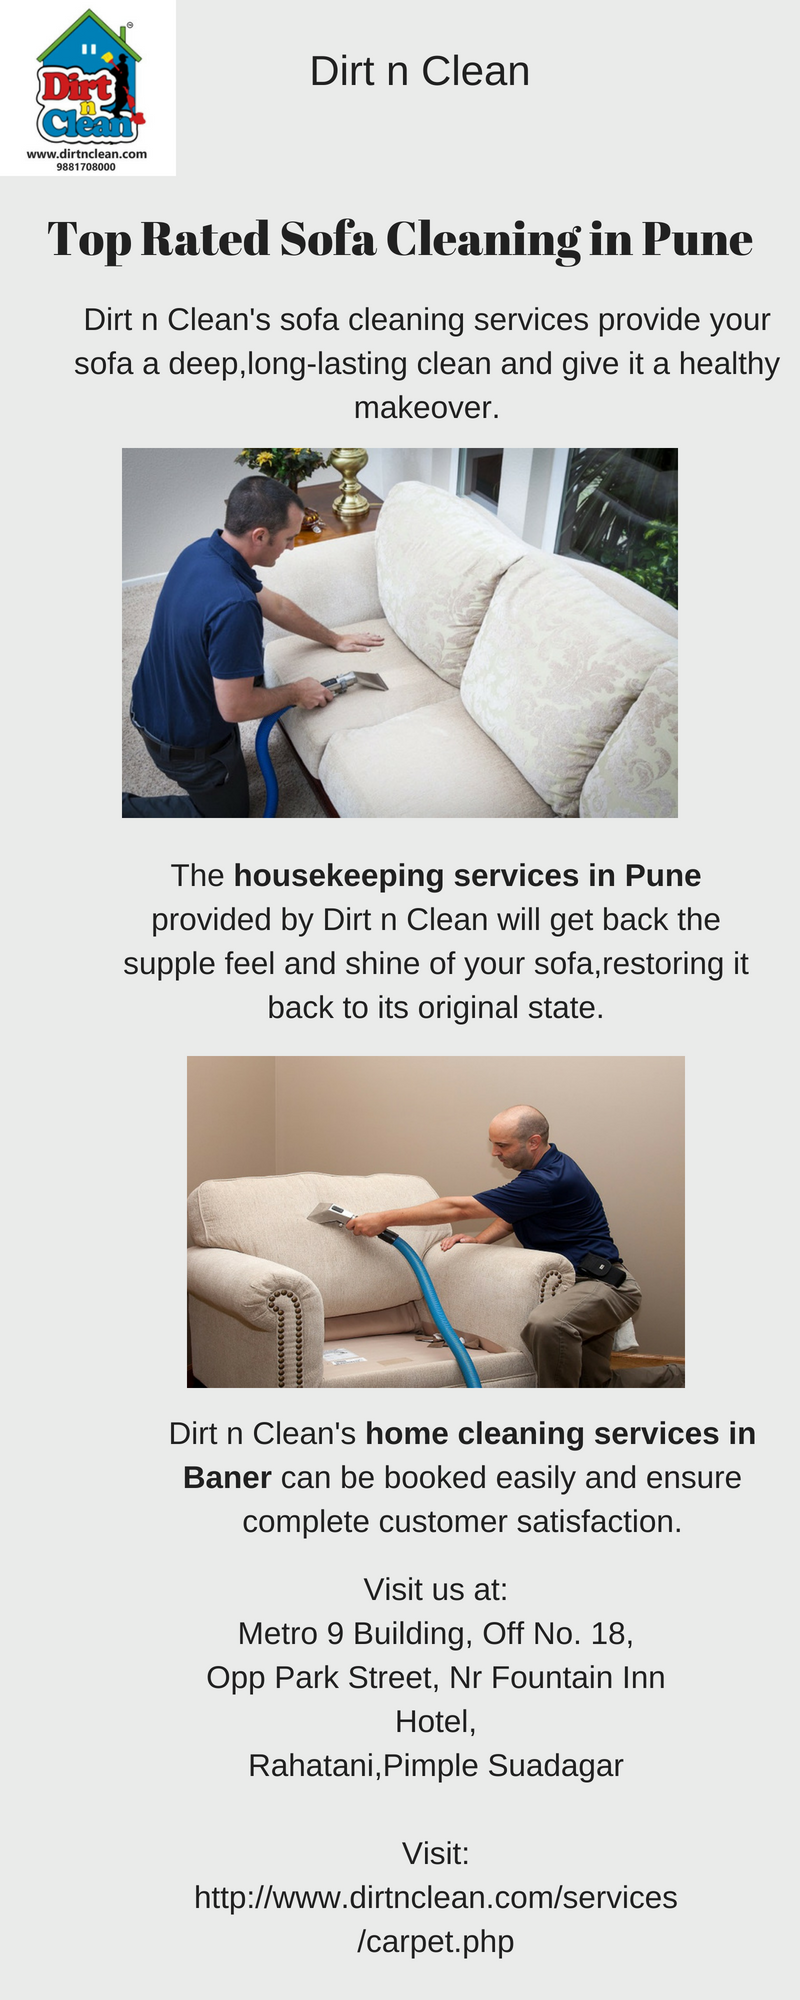 Top Leather Sofa Cleaners Graysonline The Dirt N Clean Is Most Popular Rated Cleaning Company In Pune With Best Quality Services Available For All Kind Of Such As Fabric